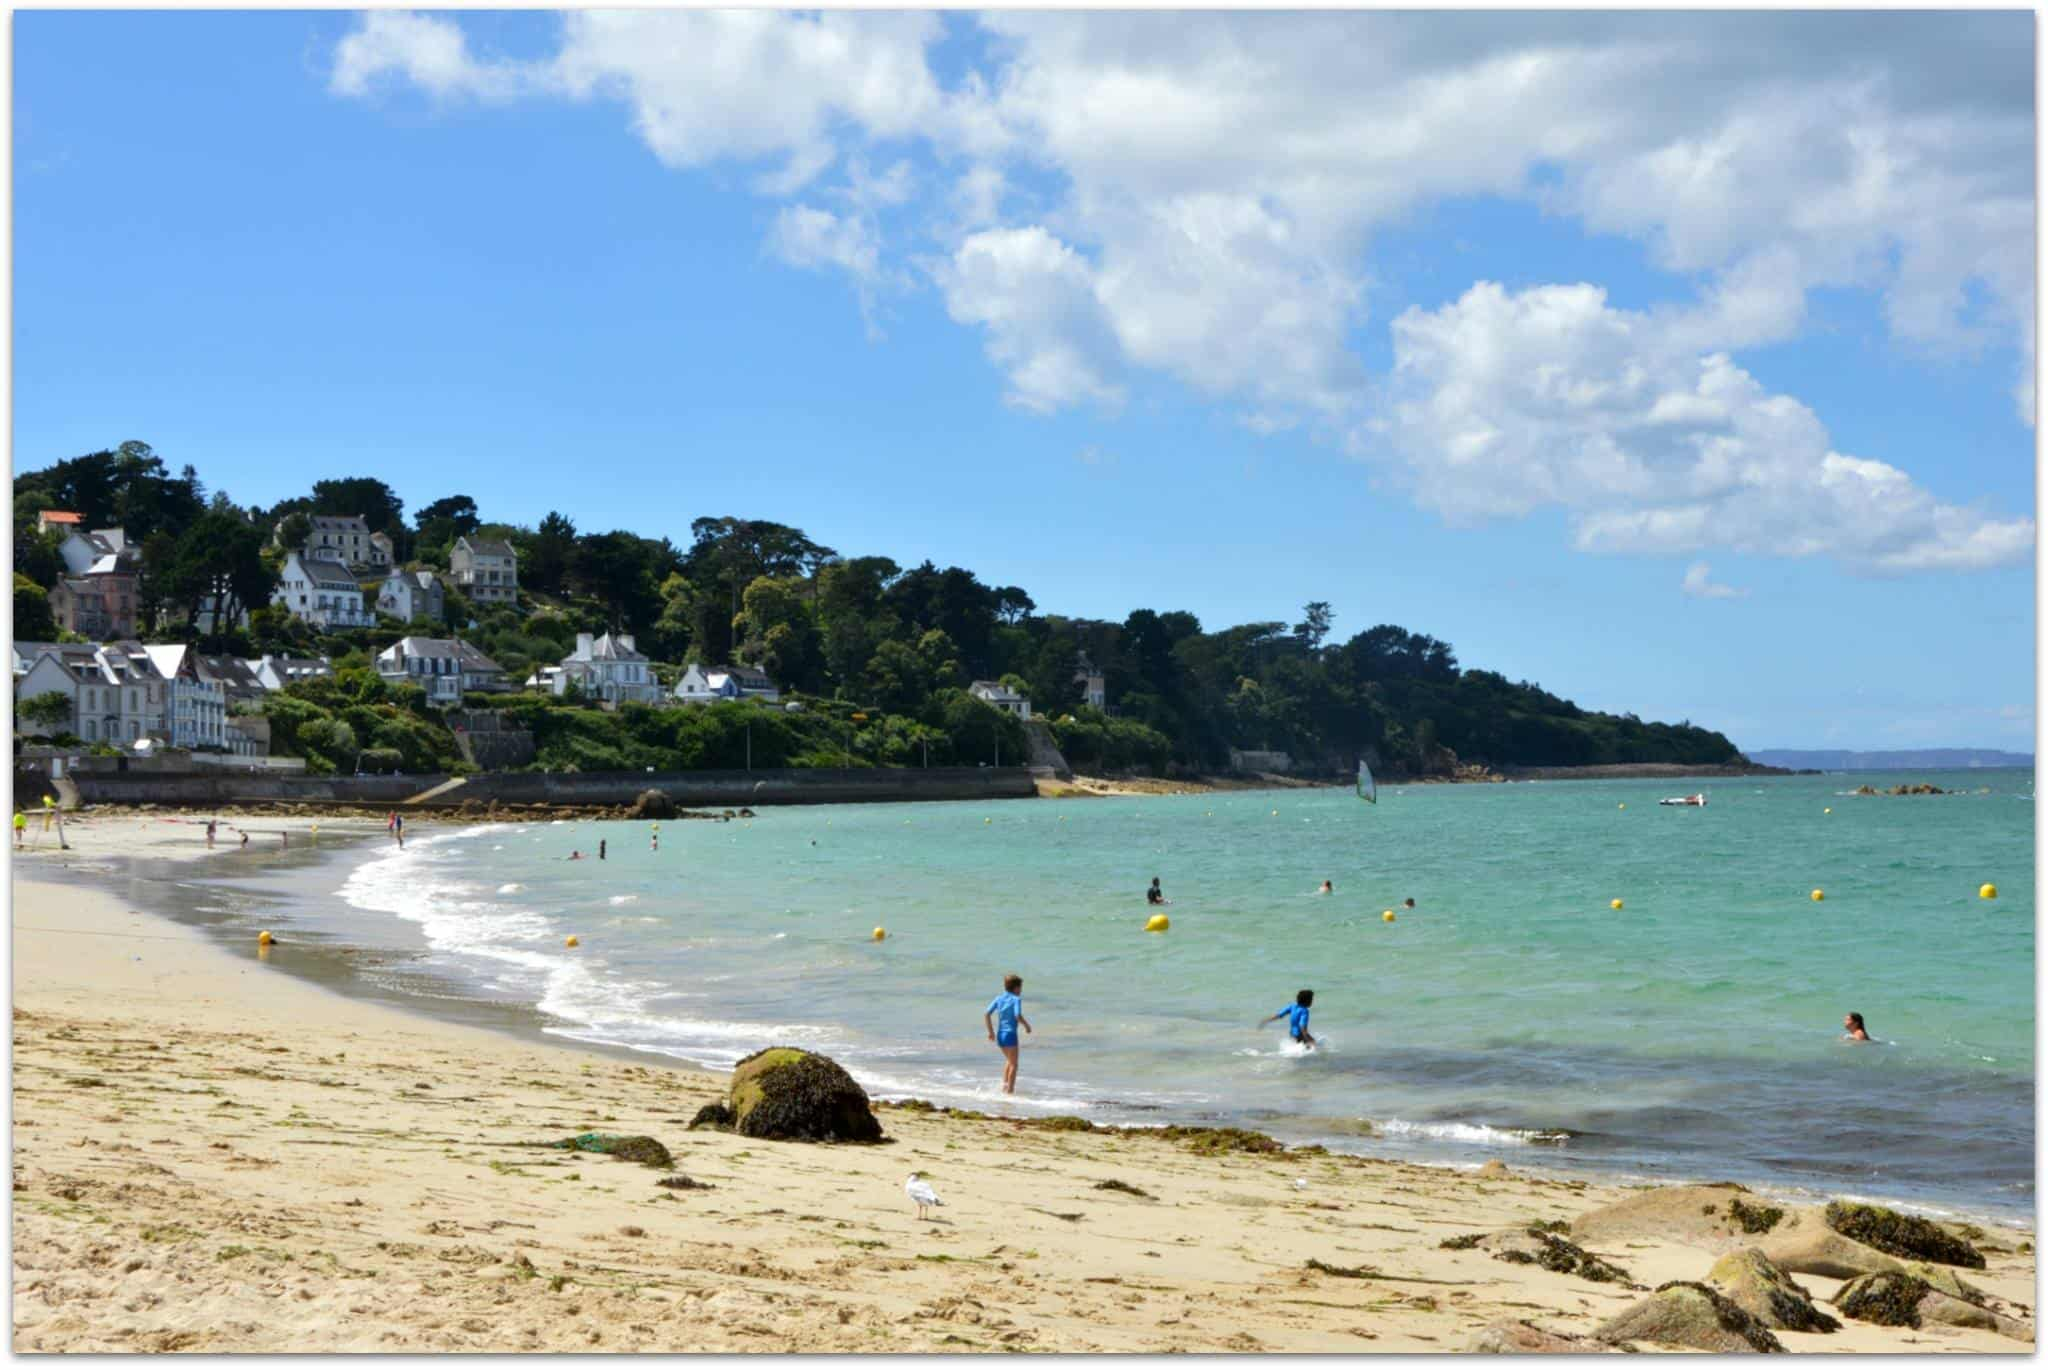 One of the beaches of Douarnenez - Tréboul Plage